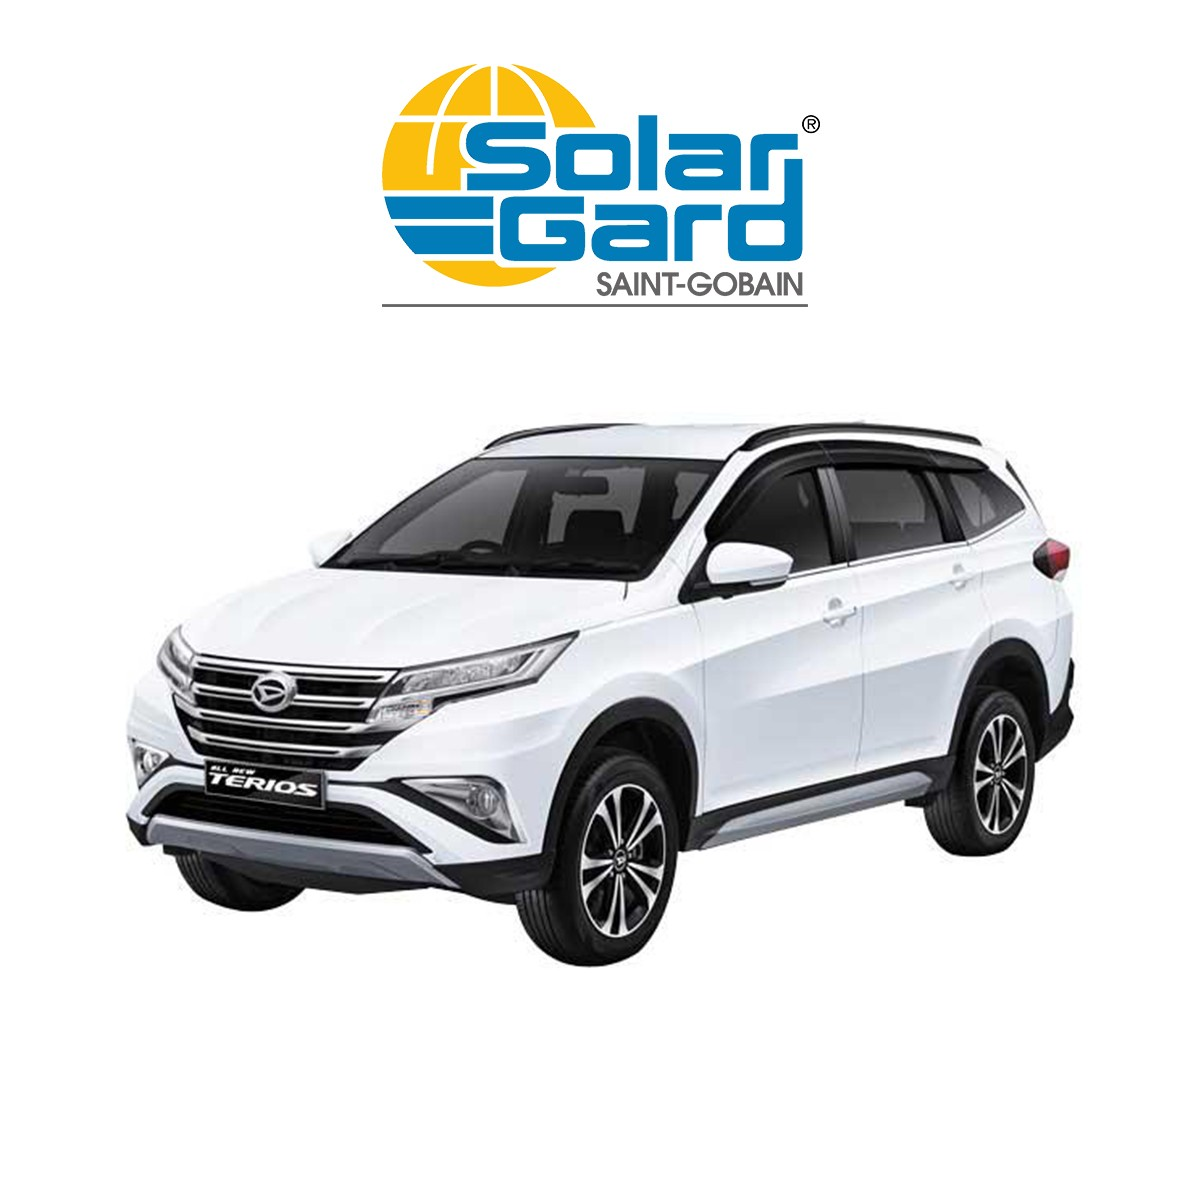 KACA FILM SOLAR GARD MOST FAVORITE - (DAIHATSU ALL NEW TERIOS) FULL KACA